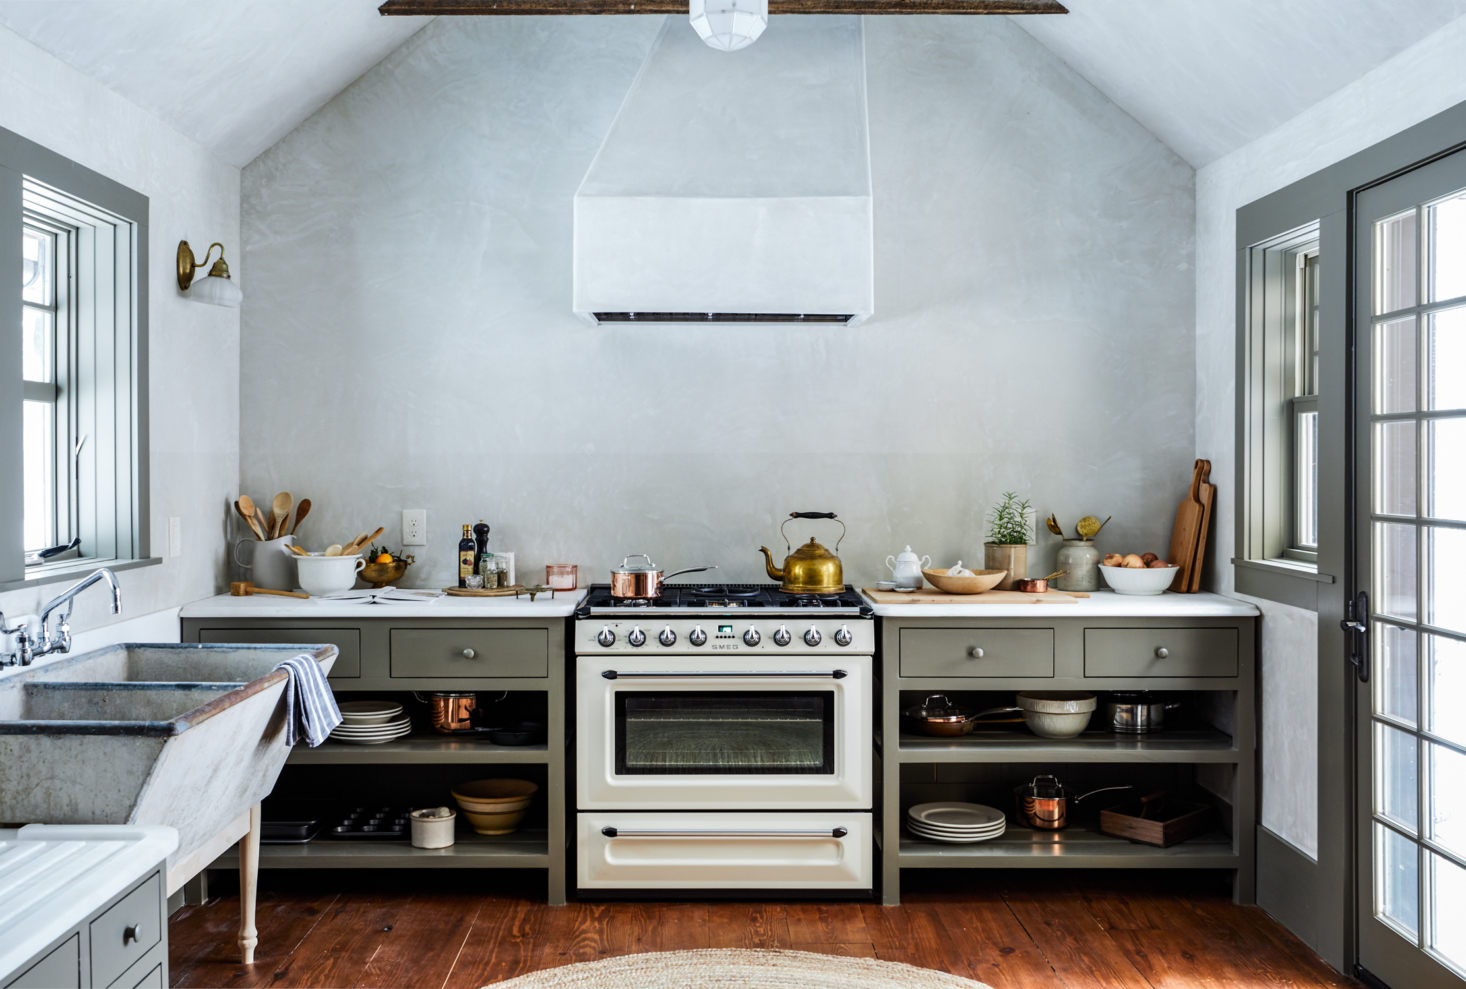 Steal This Look: A New York Kitchen with Old World Charm